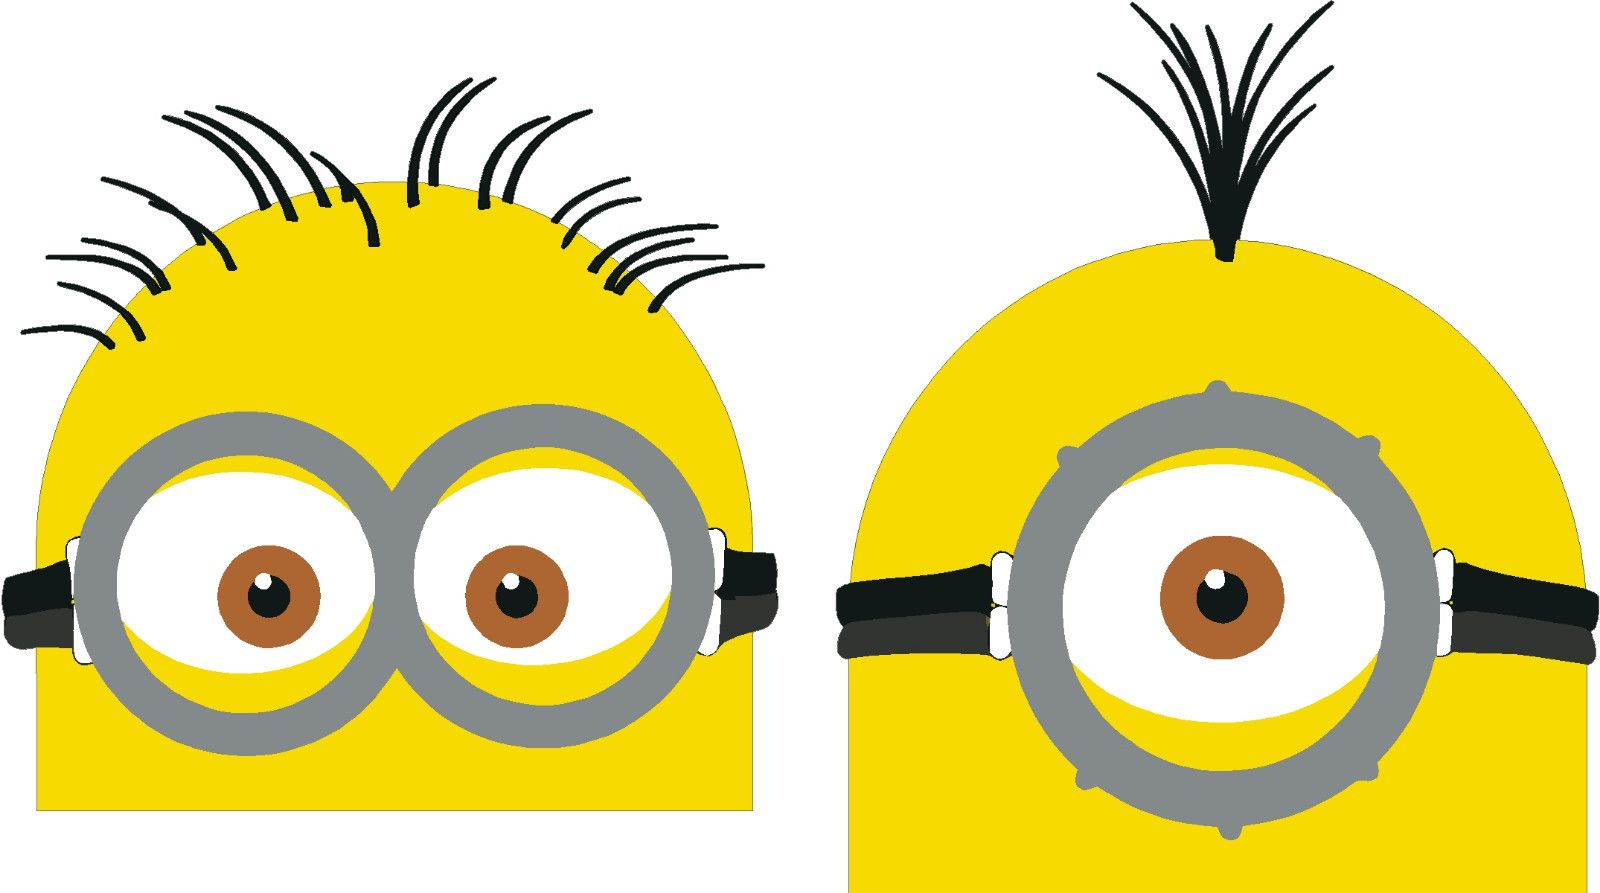 MINION 2 Peeper Peeping Minions Despicable me Decal Sticker JDM MEME LOL VECTOR